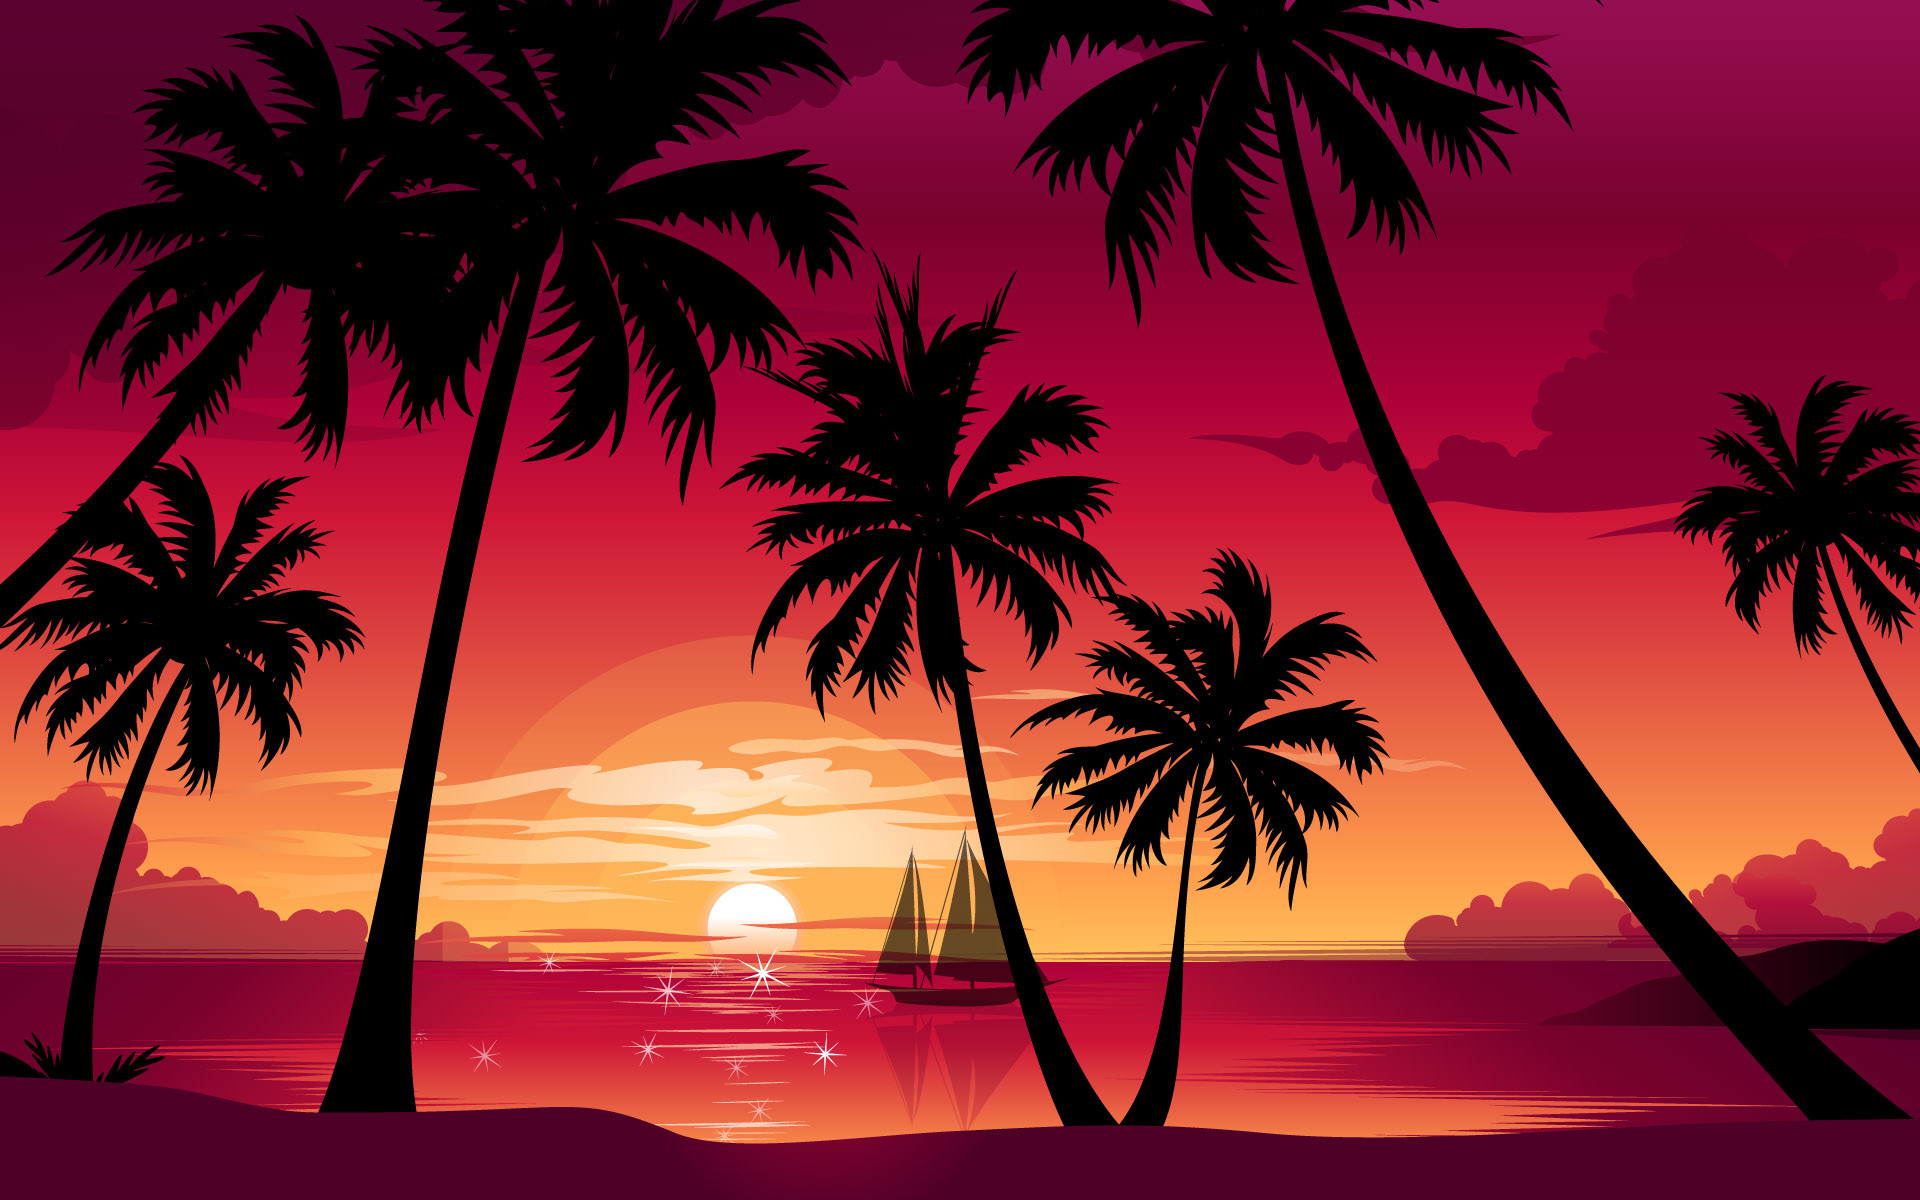 sunset hd wallpapers palm trees sunset wallpapers palm trees sunset .